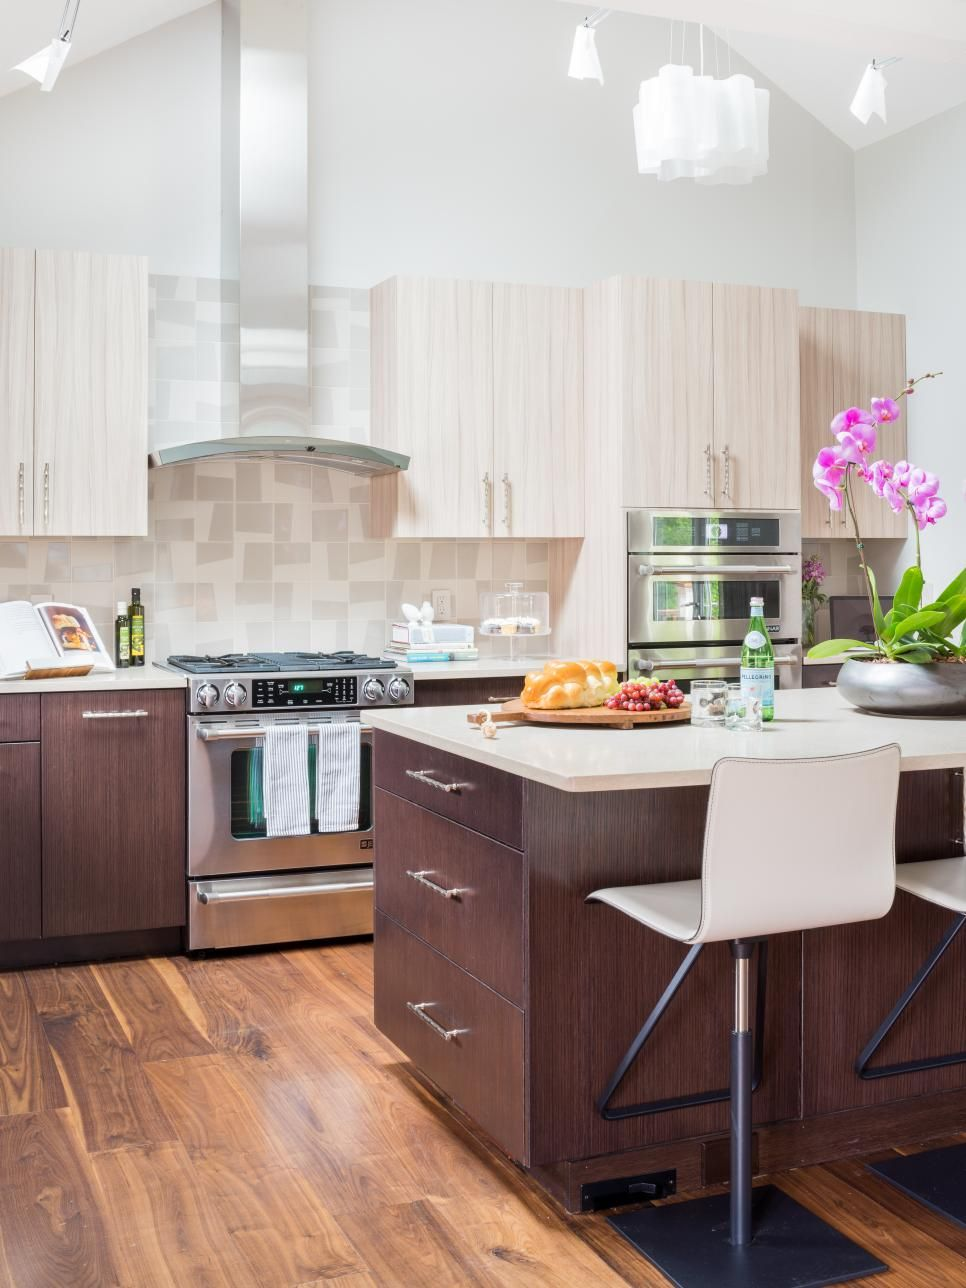 This midcentury modern kitchen features a large island ...